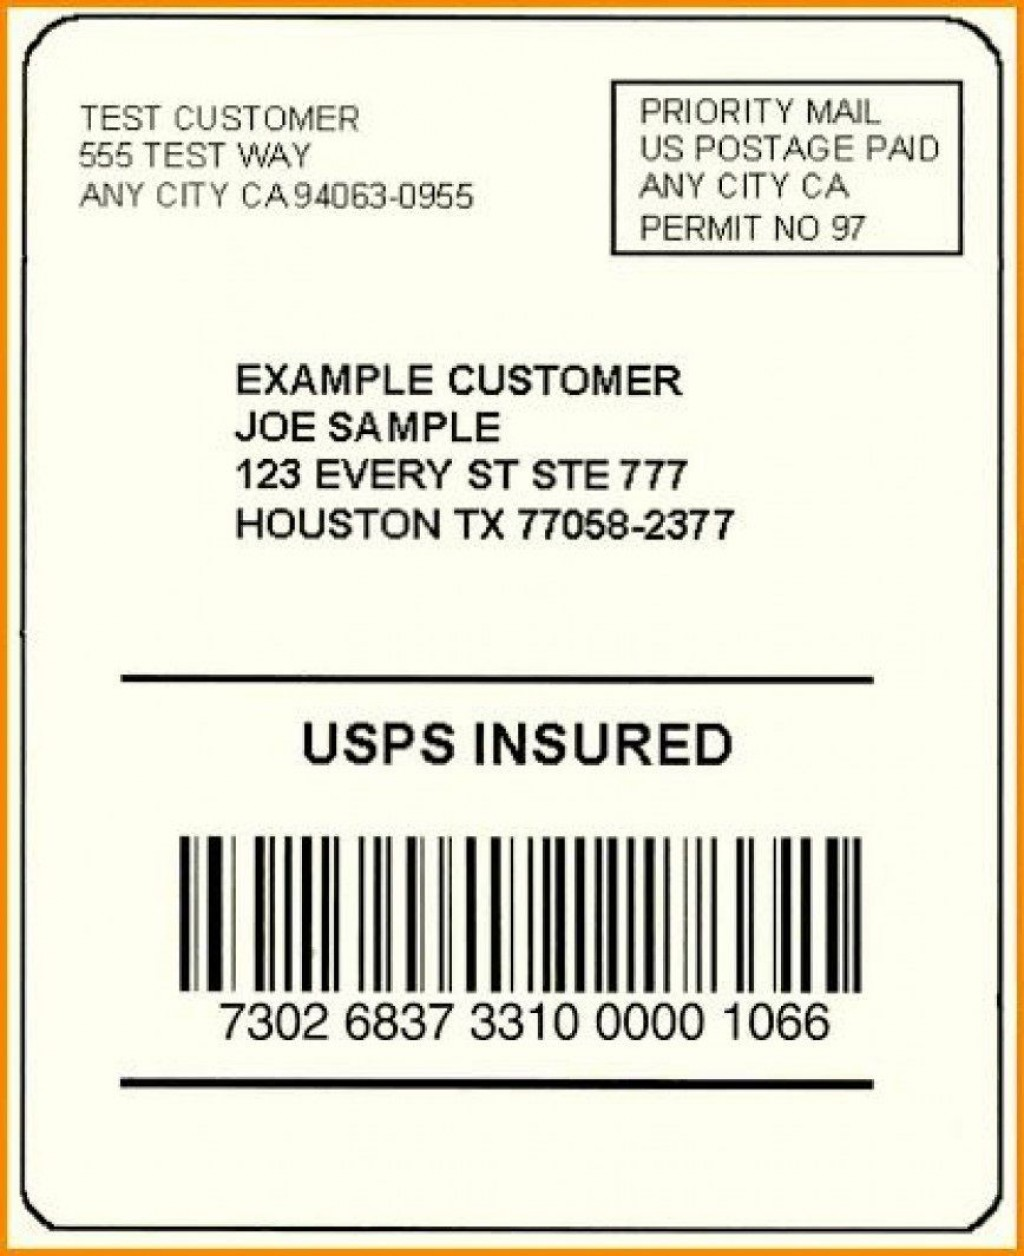 002 Exceptional Free Usp Shipping Label Template Sample Large